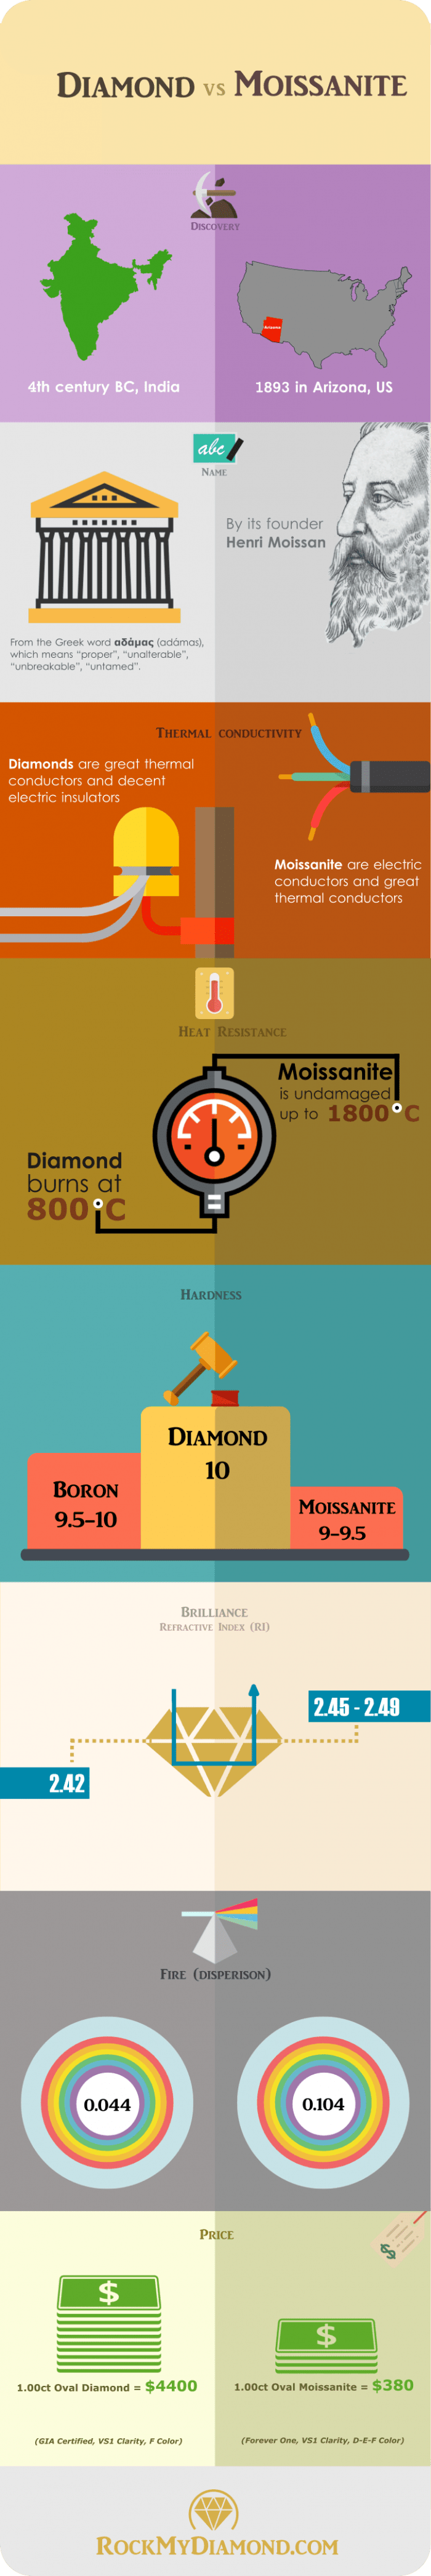 infographic describes differences between moissanite and diamonds